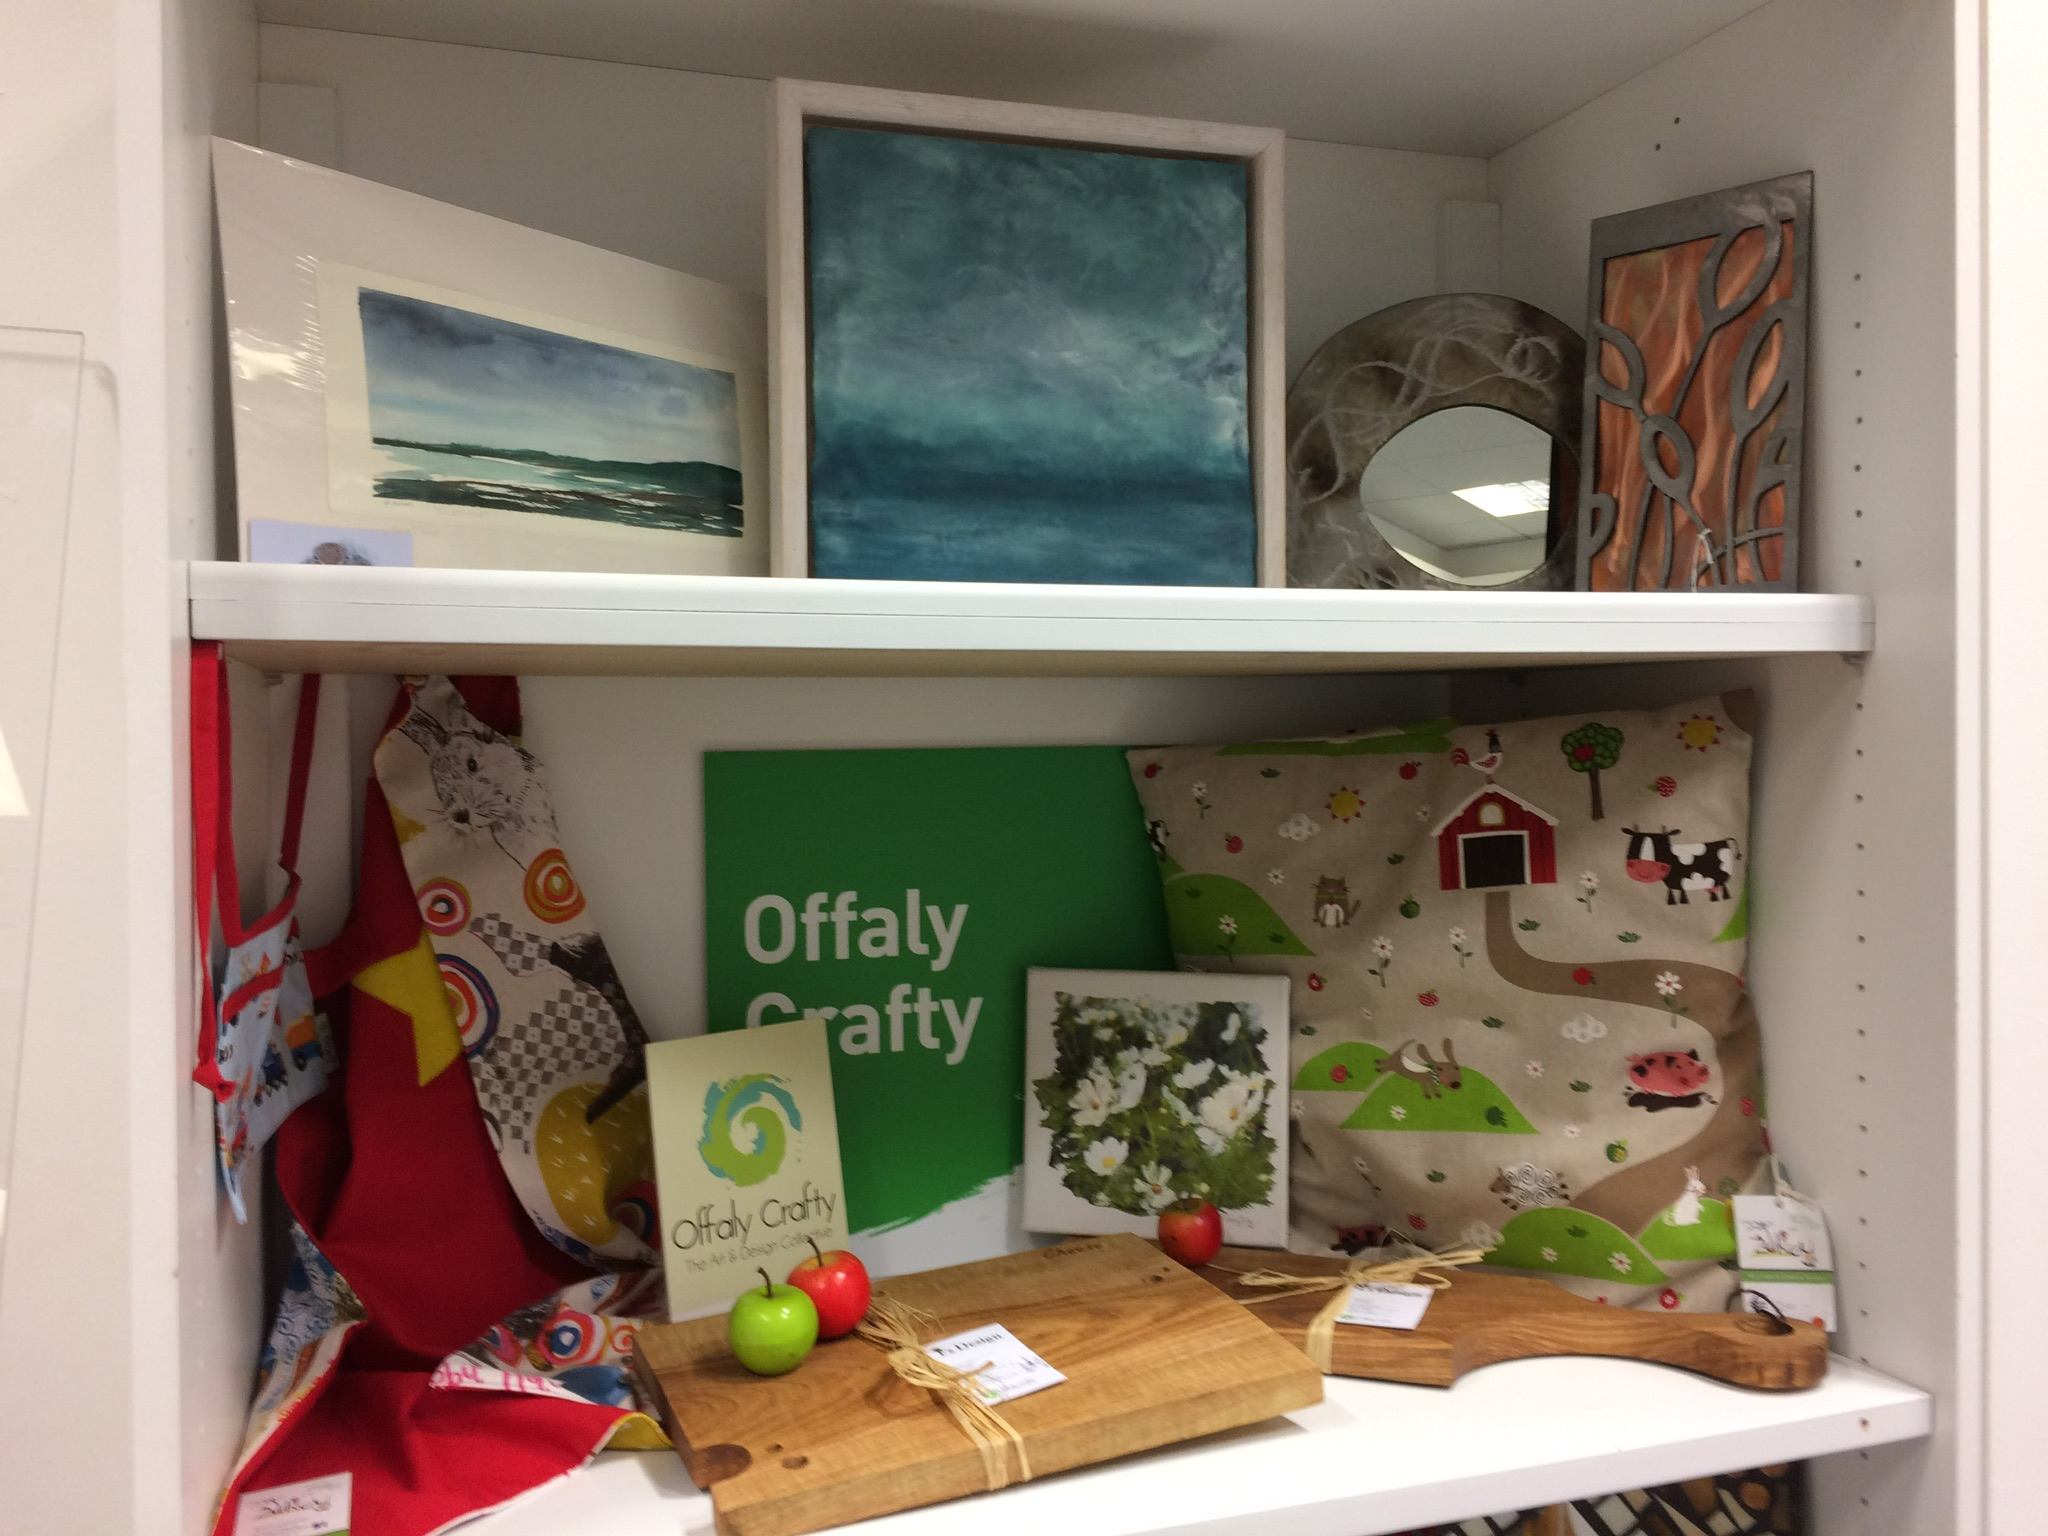 Offaly Crafty Art Display